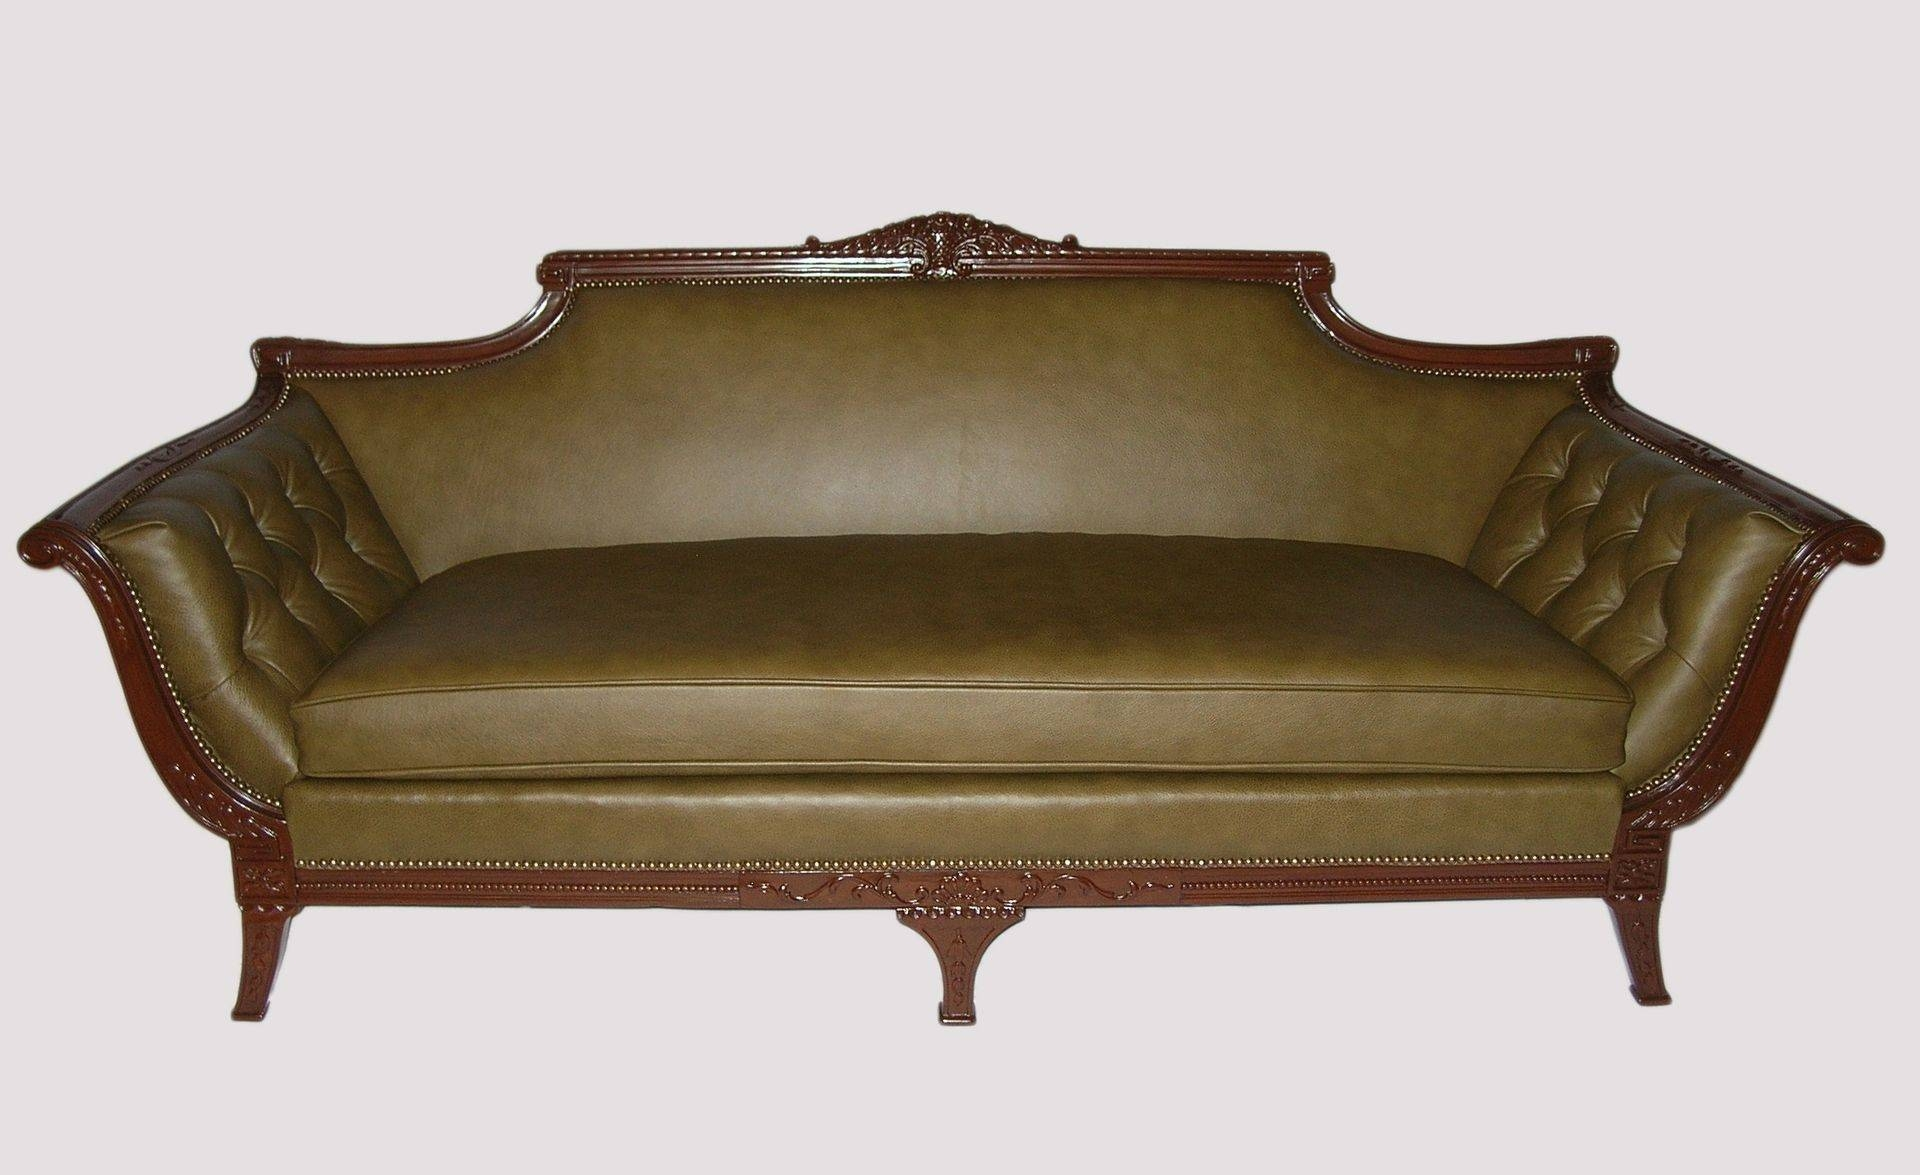 Colonial Sofas 44 With Colonial Sofas | Jinanhongyu With Colonial Sofas (View 4 of 15)